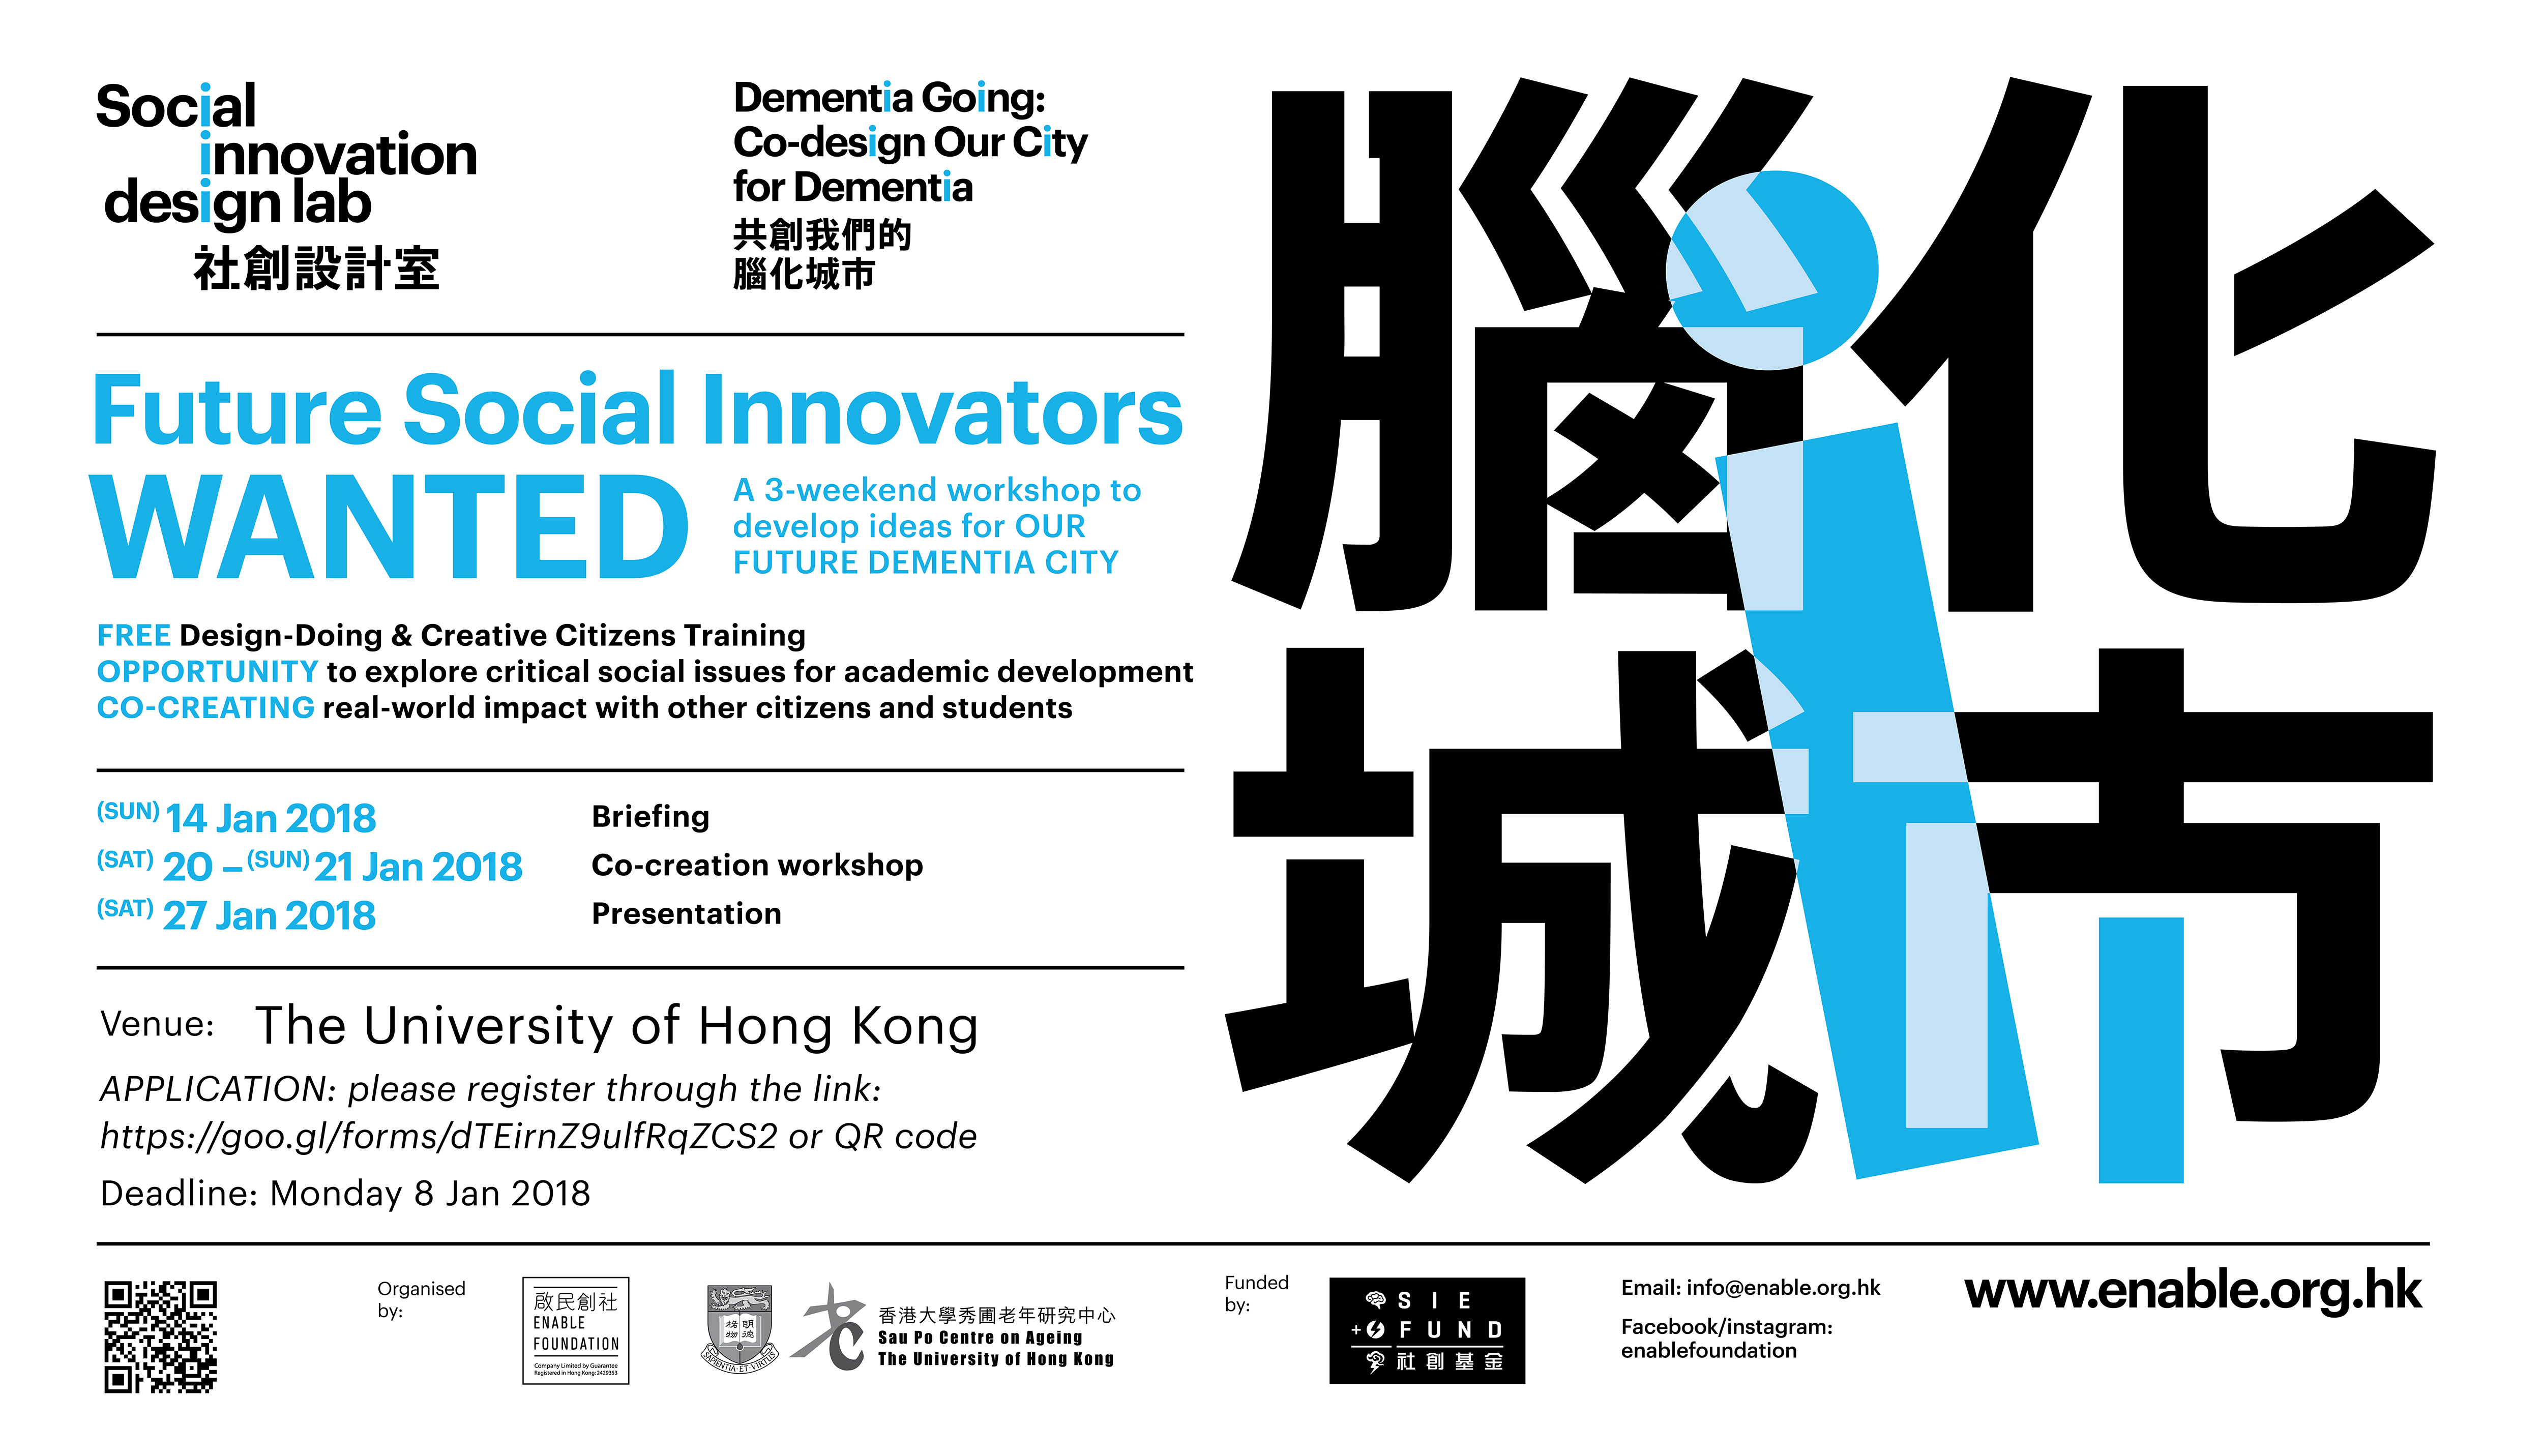 Dementia Going – Social Innovation Design Lab Registration (腦化城市 . 社創設計室)